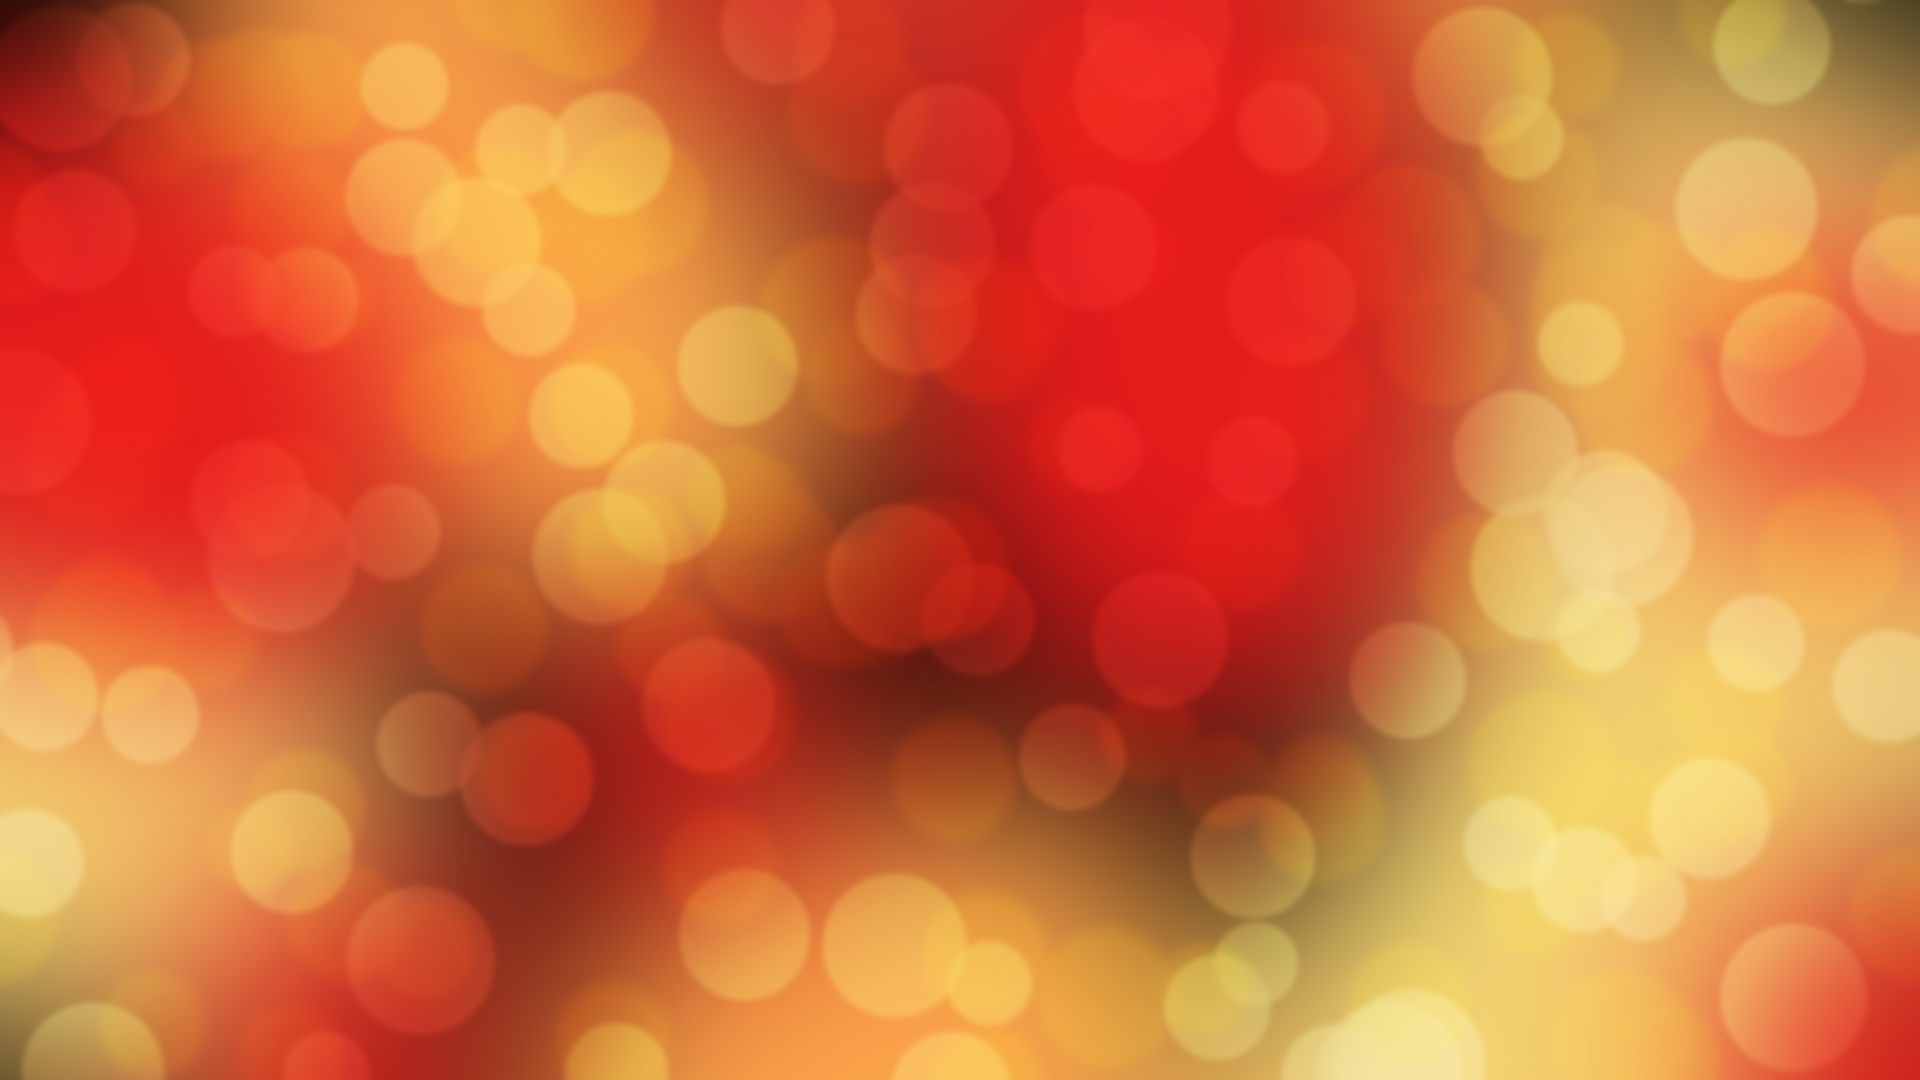 Abstract Bokeh Background by Mill Creek Creative.jpg